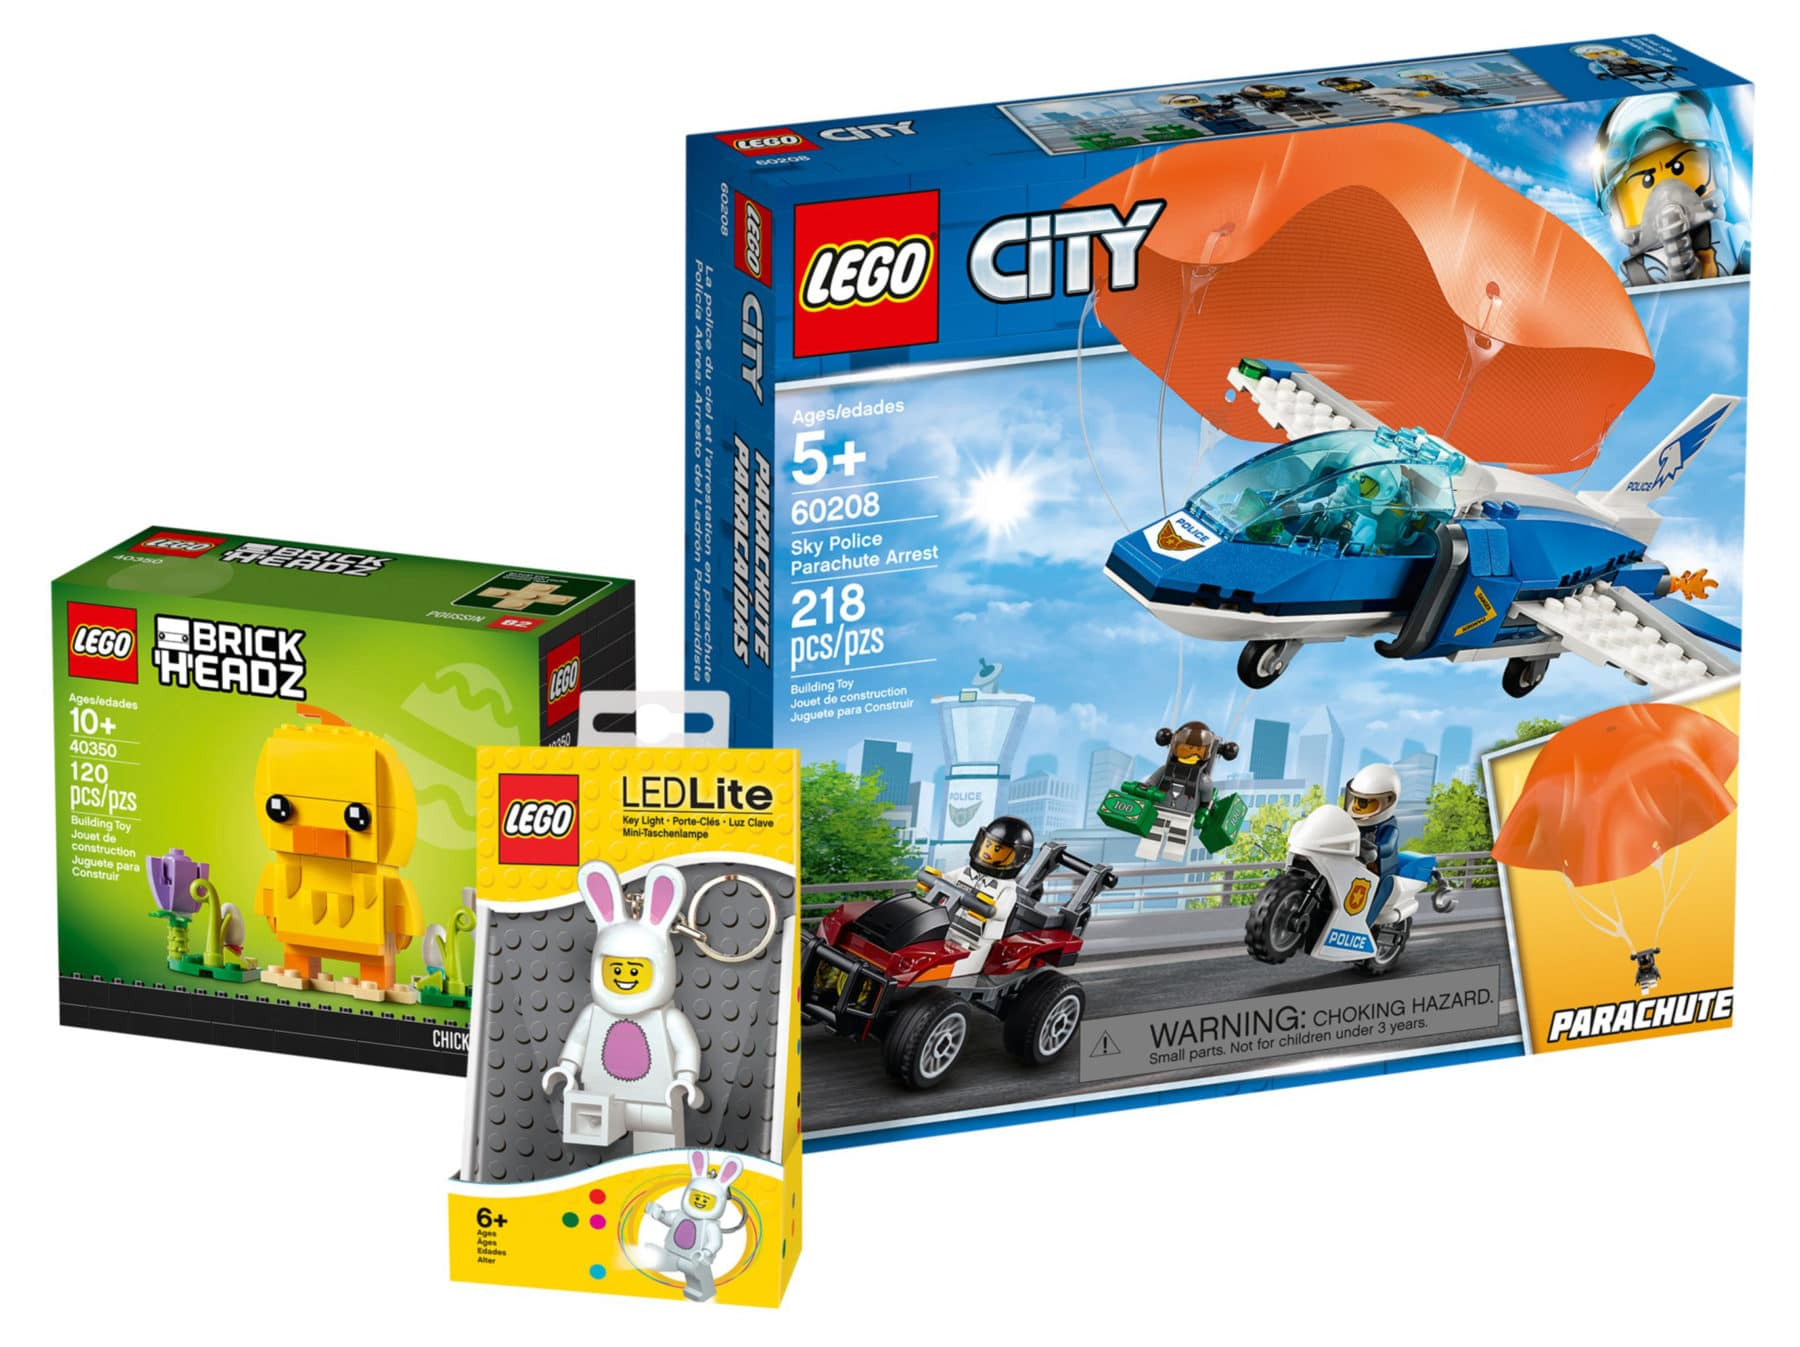 LEGO City Ostern Bundle 5005830